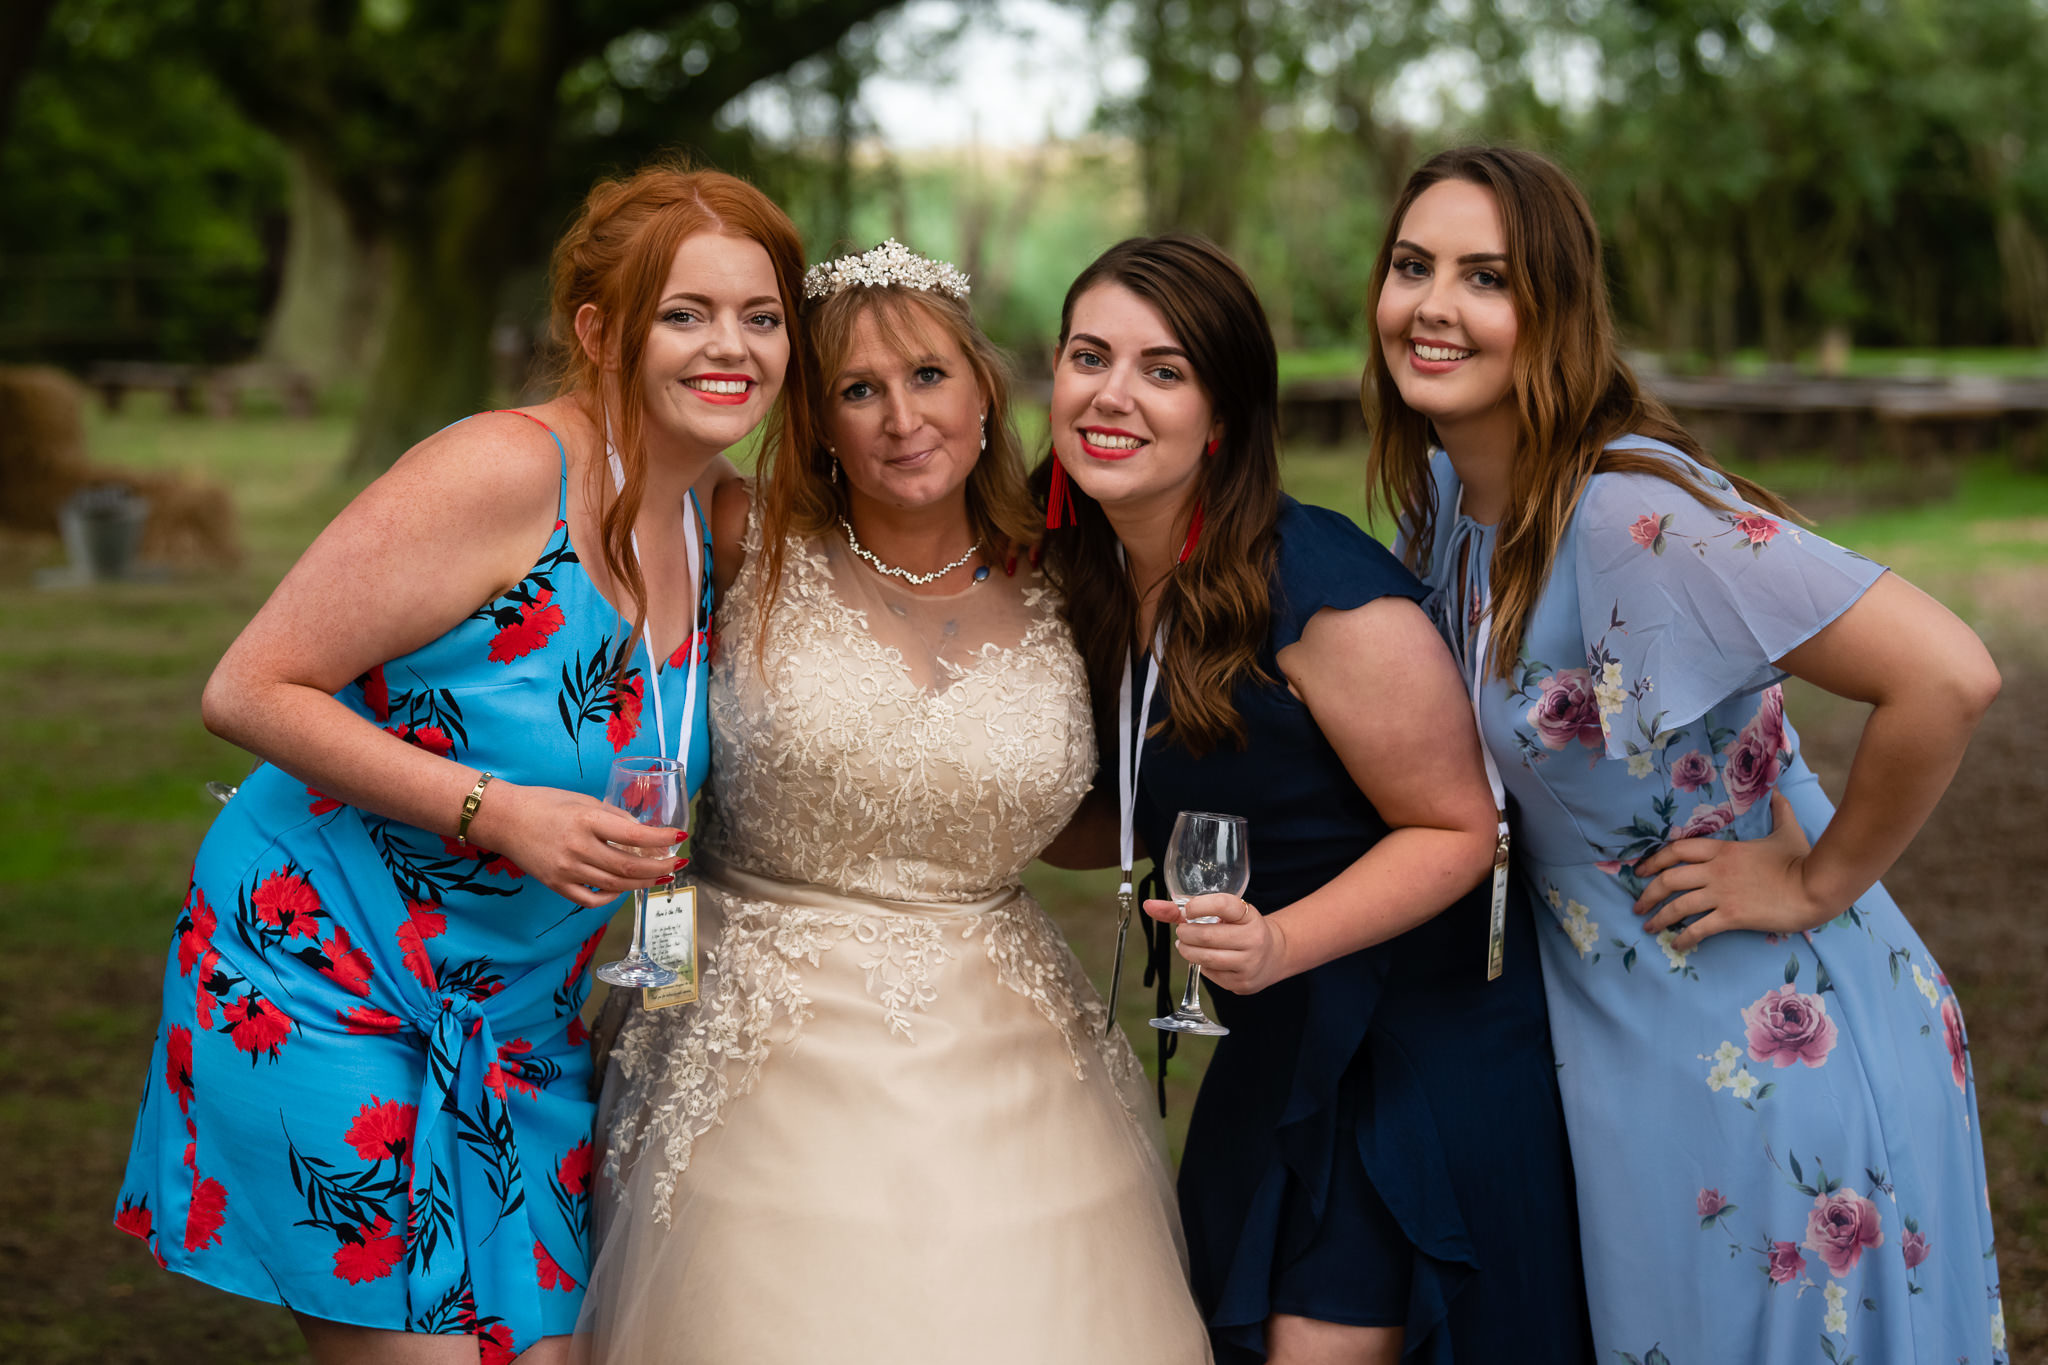 The bride and her girlfriends